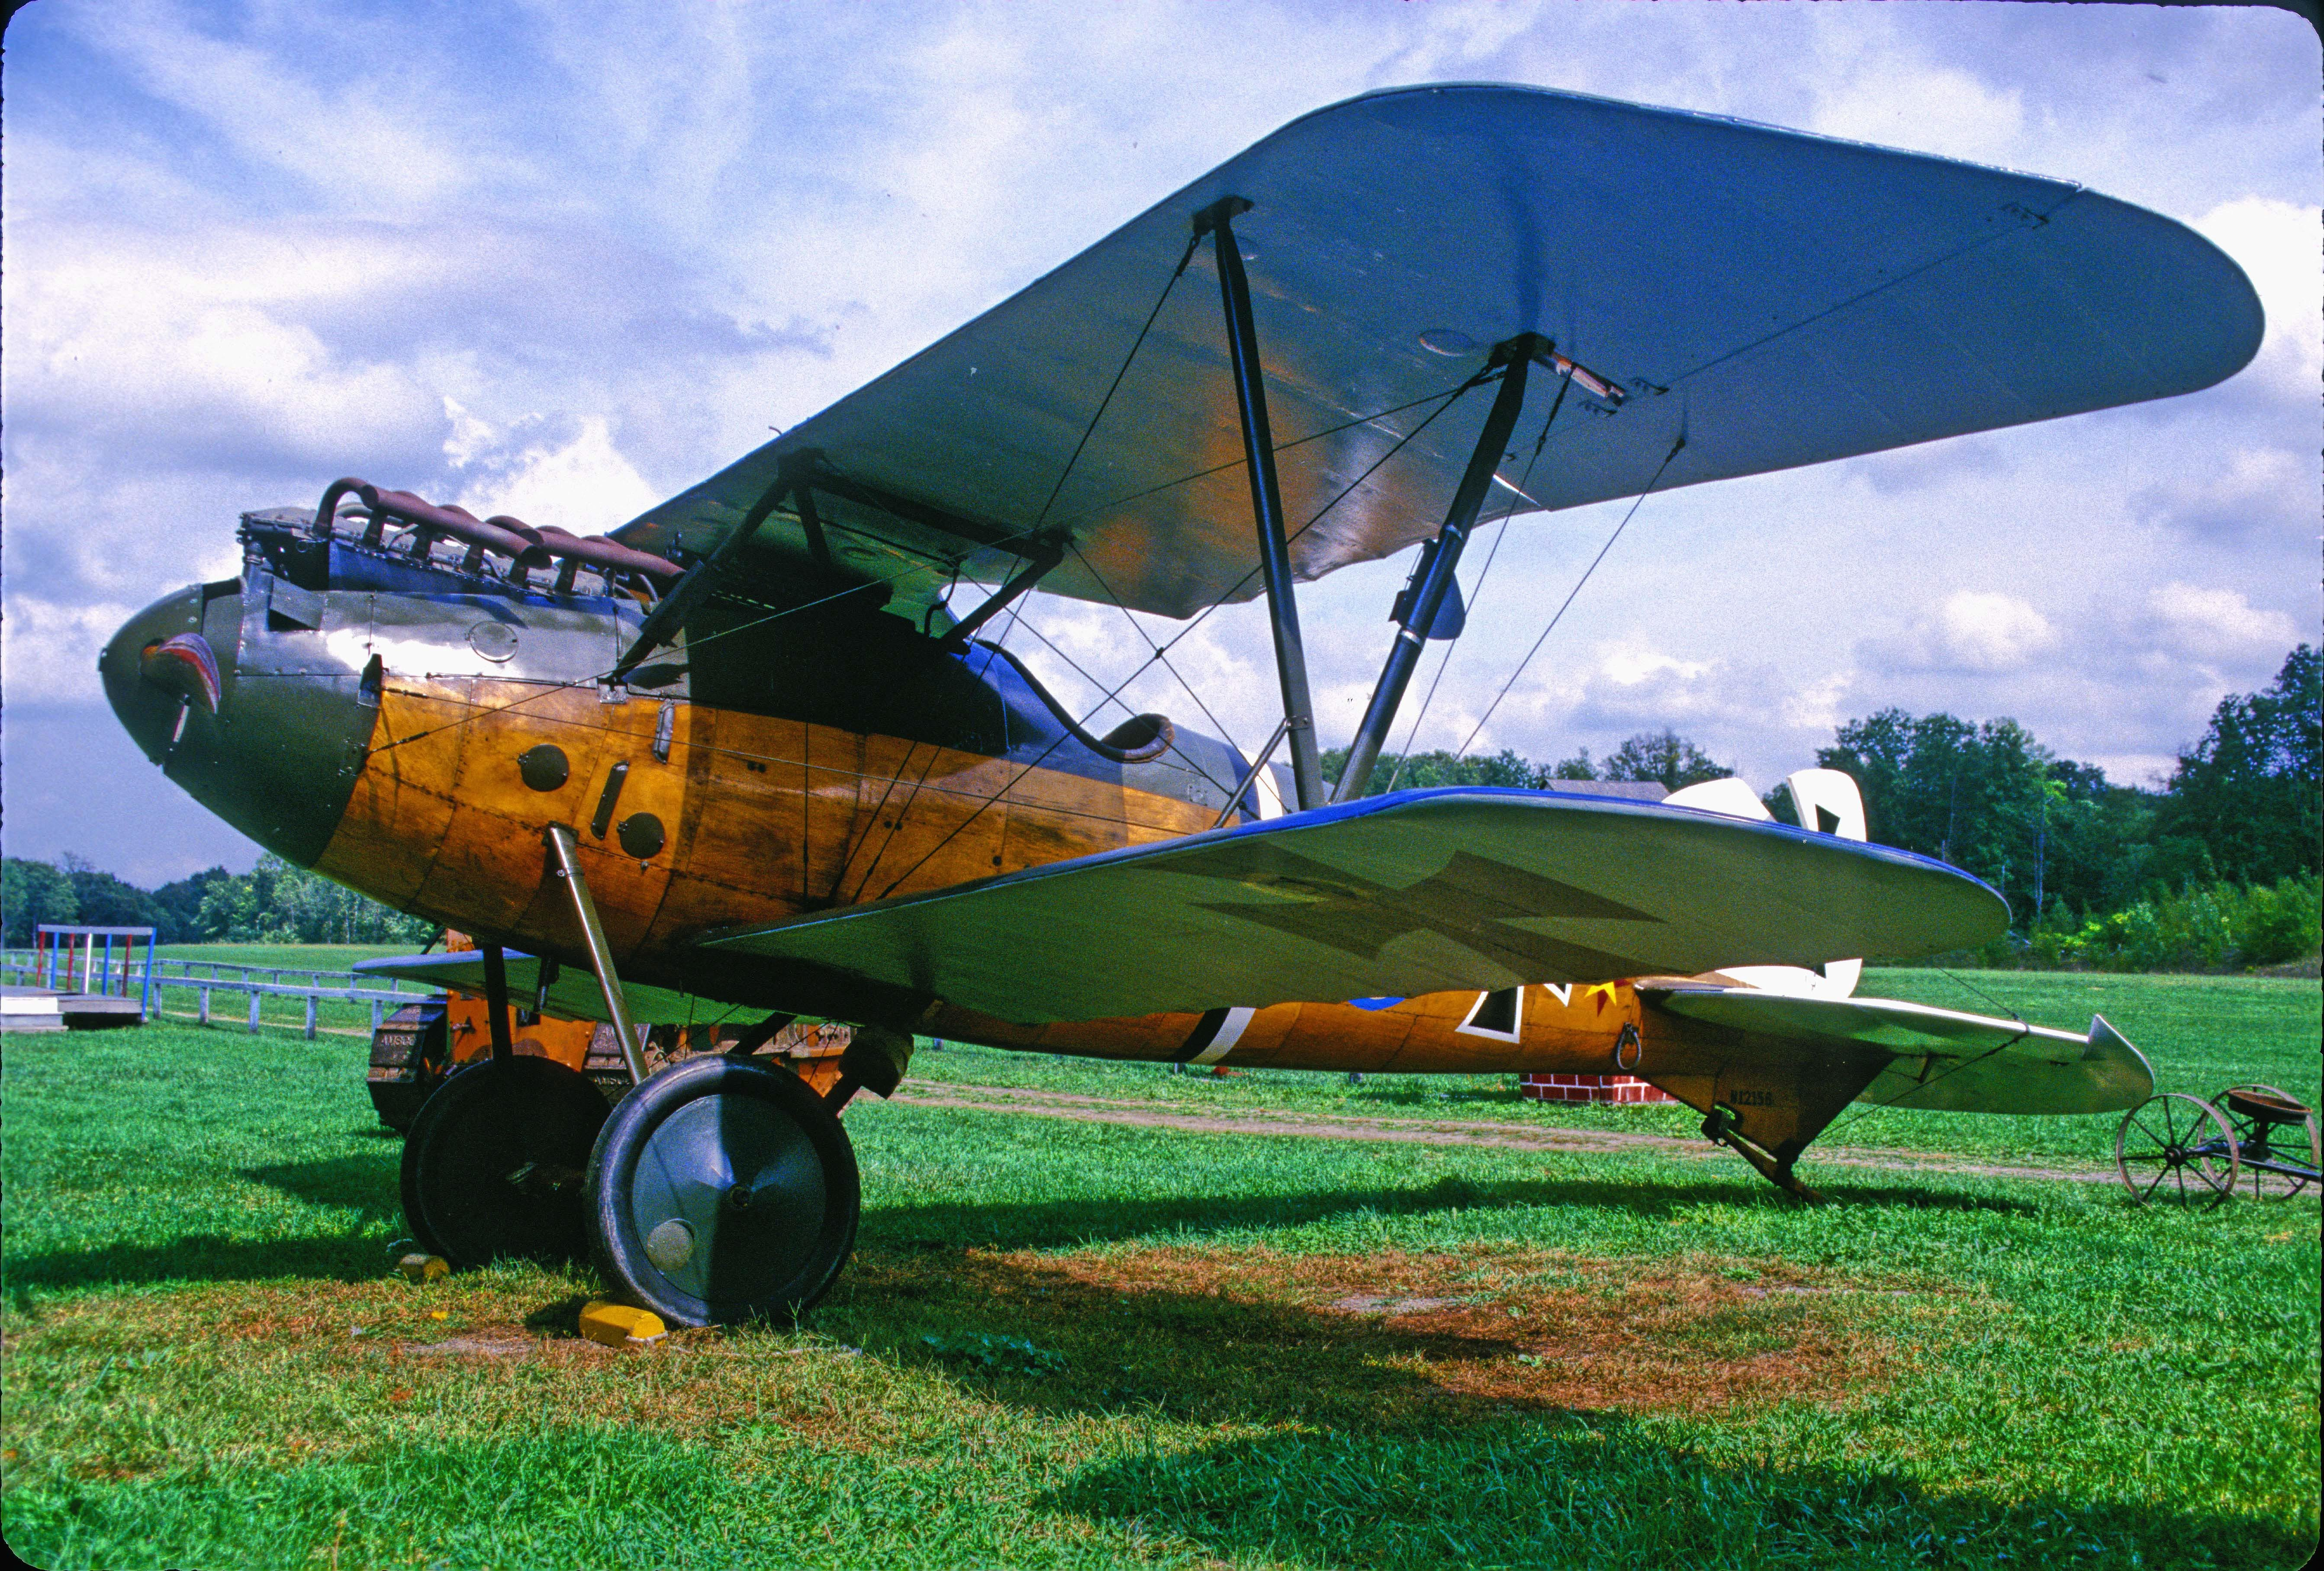 Biplane airplane plane aircraft military wallpaper for Airplane plan